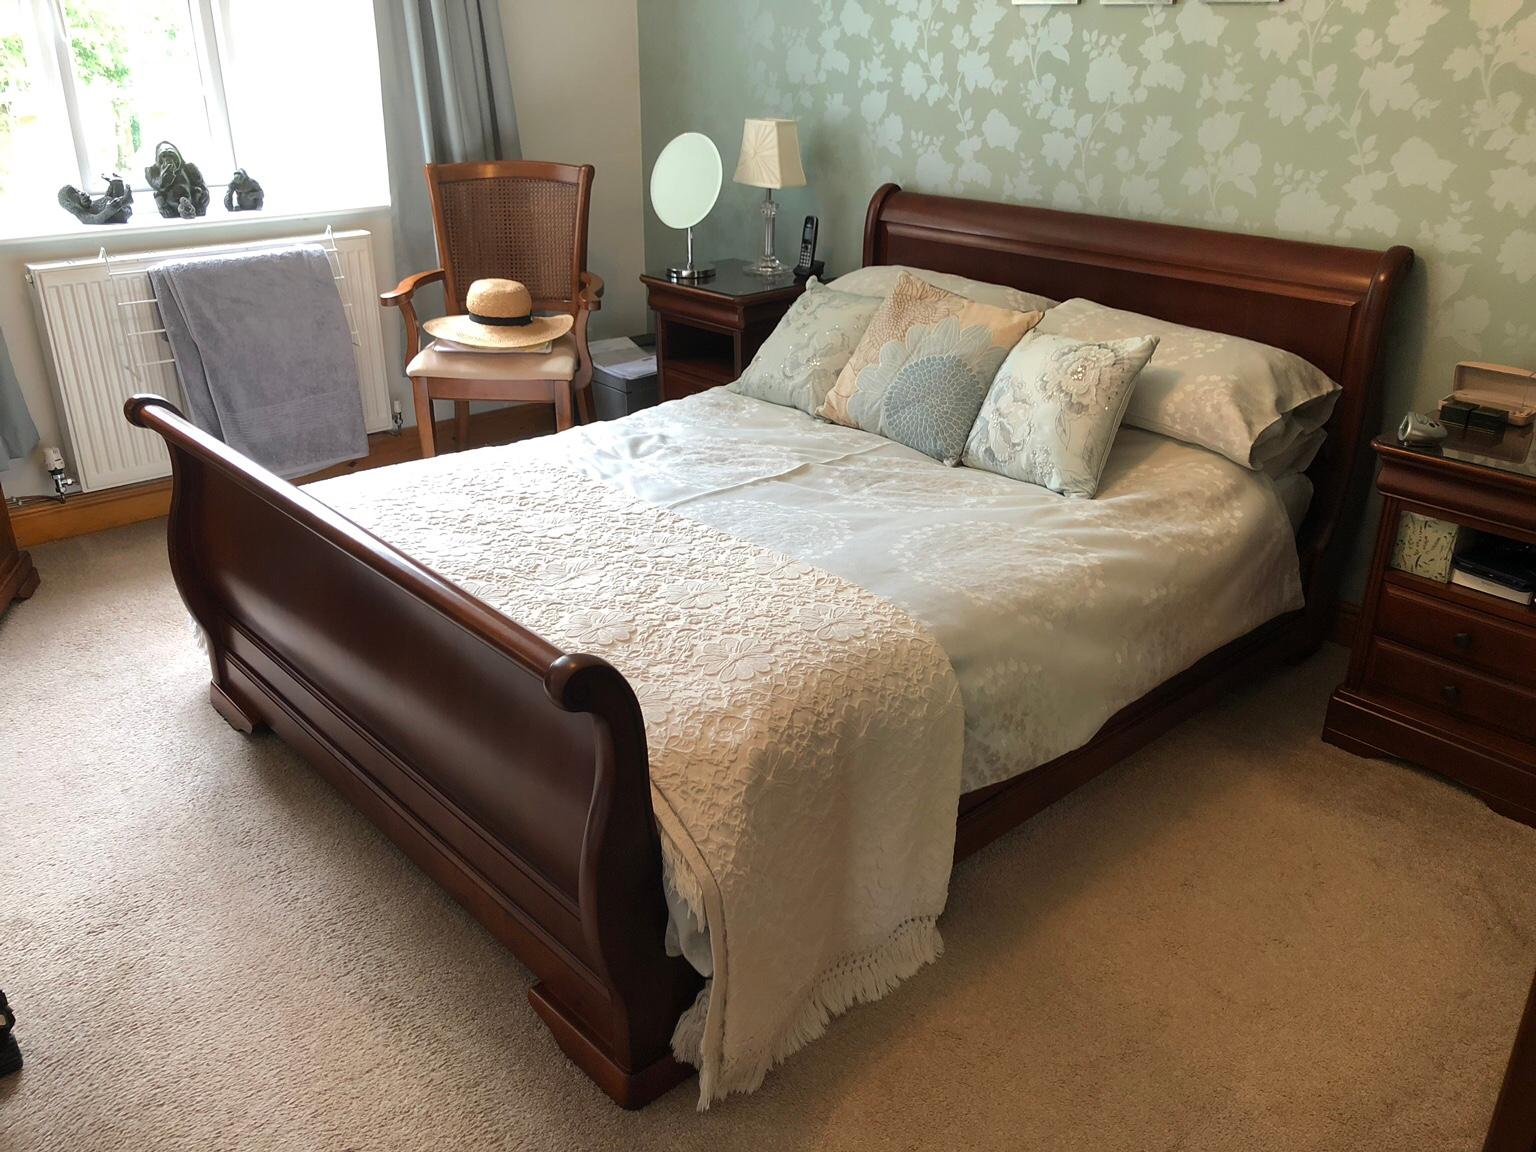 Mahogany Sleigh Bed 4ft6 In Ng5 Gedling For 225 00 For Sale Shpock